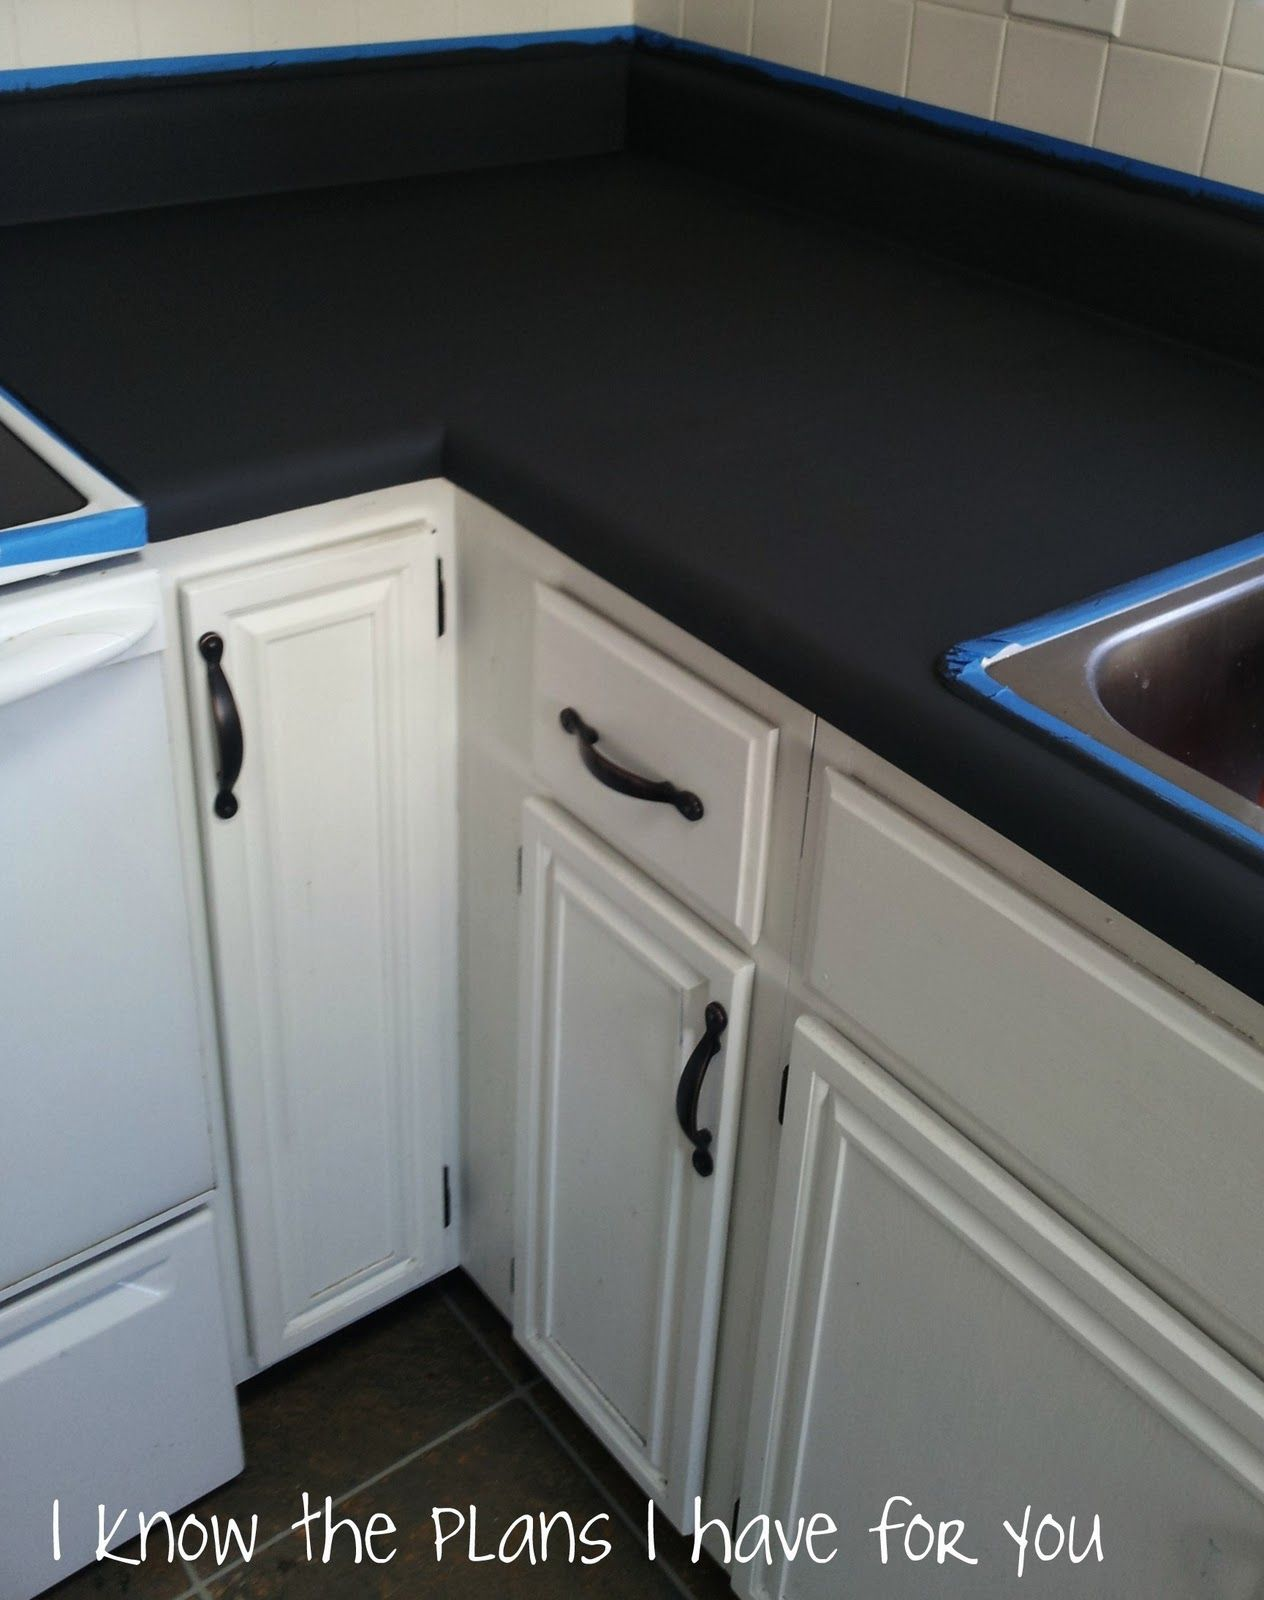 Diy How To Paint Kitchen Countertops Lots Of Tips On What To Do And What N Diy Kitchen Countertops Painting Kitchen Countertops Kitchen Remodel Countertops